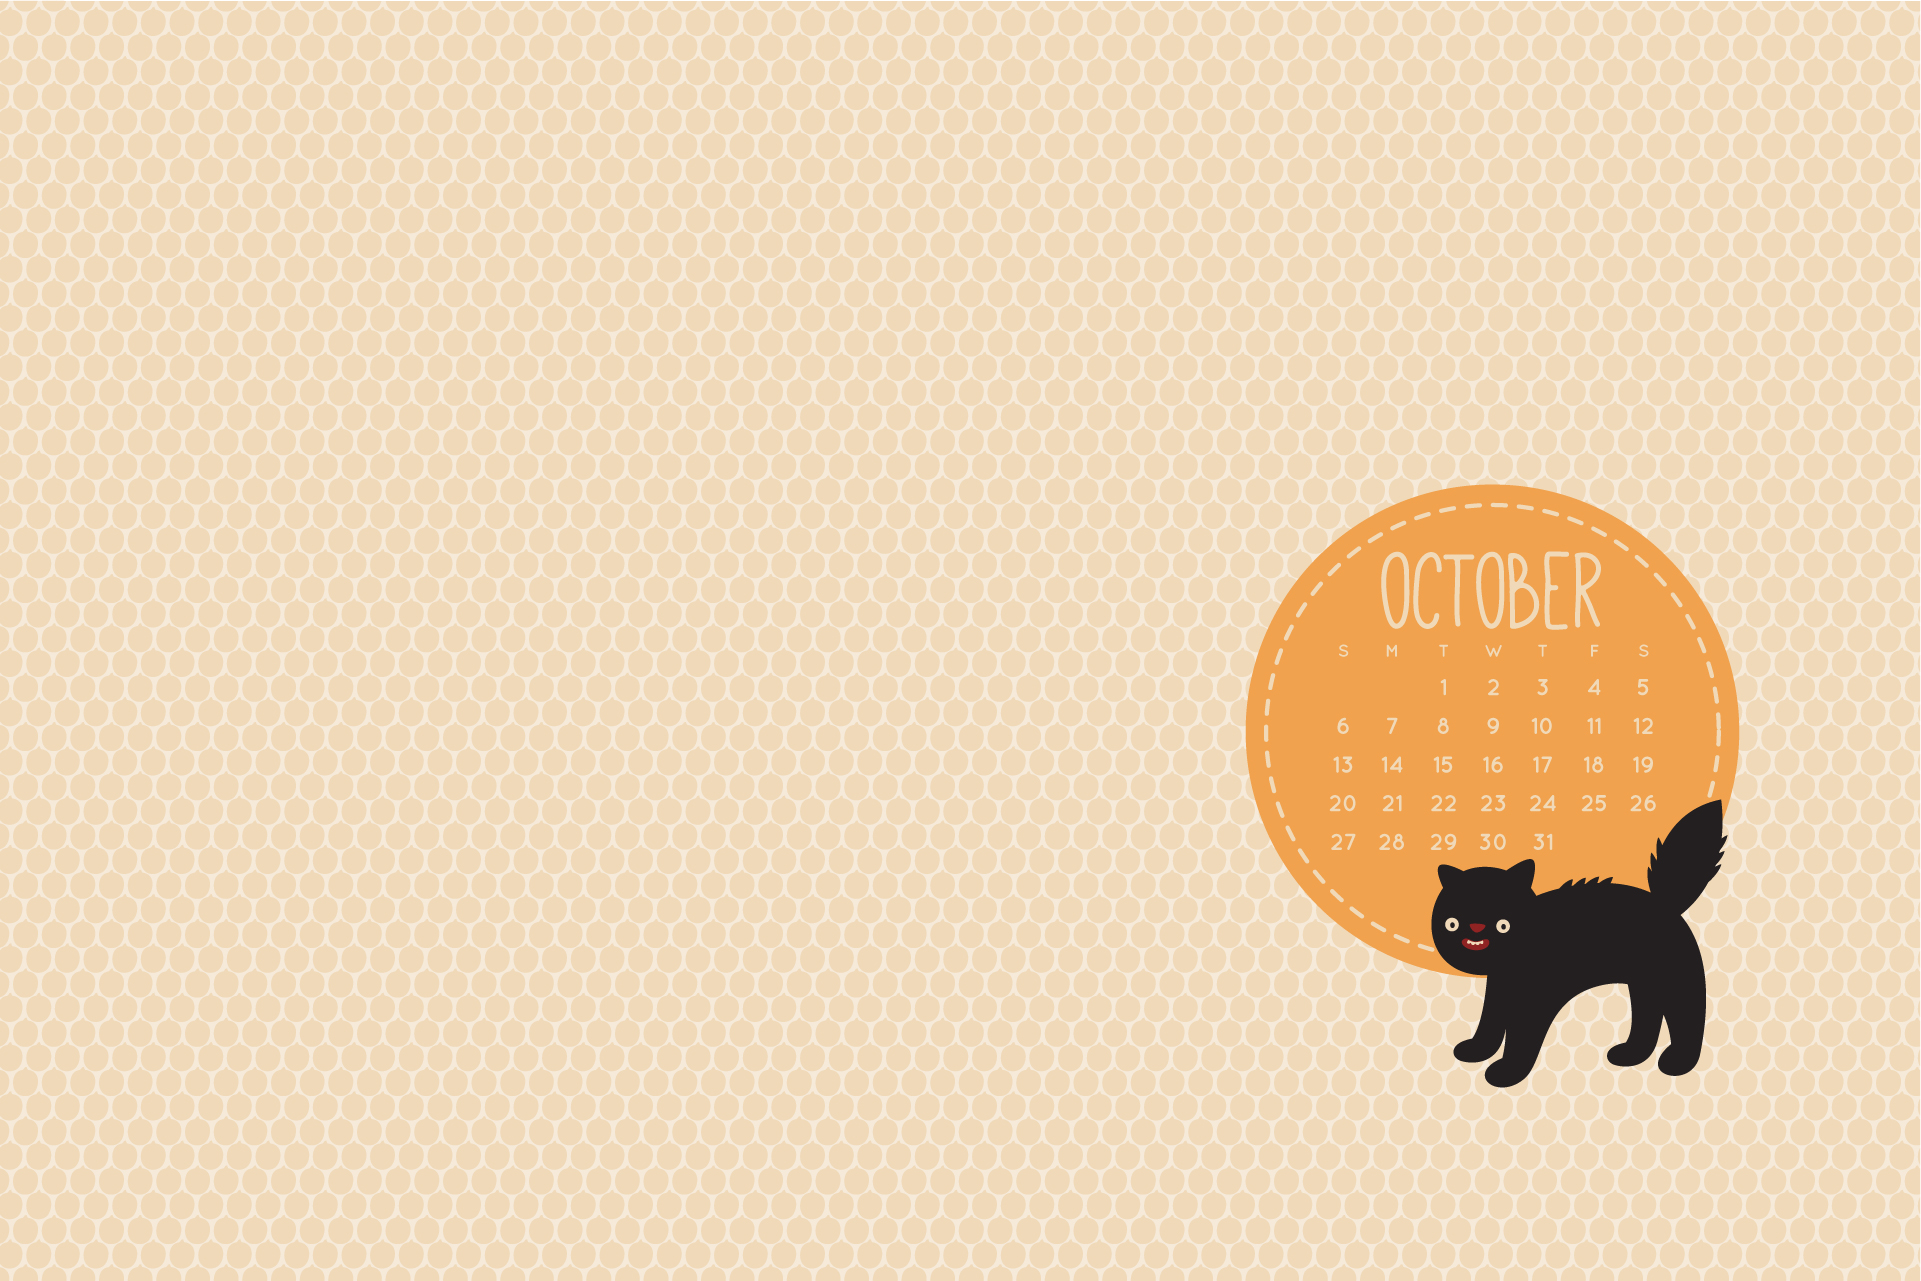 Fall Pumpkin Wallpaper Desktop Wild Olive Calendar October S Spooky Cat